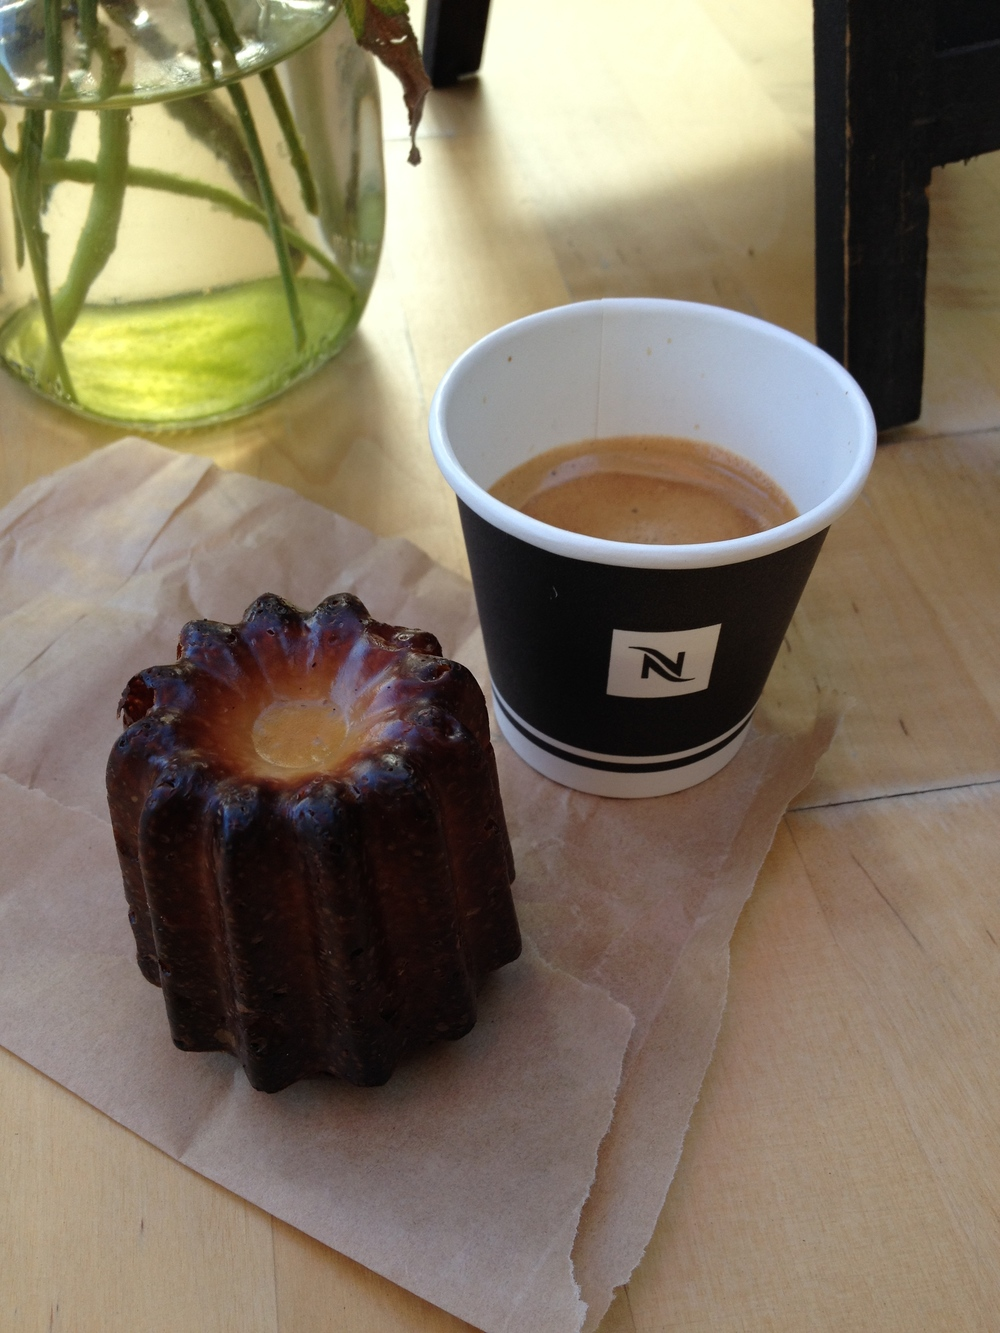 You can't beat starting your day with a shot of espresso and a fresh  canelé.